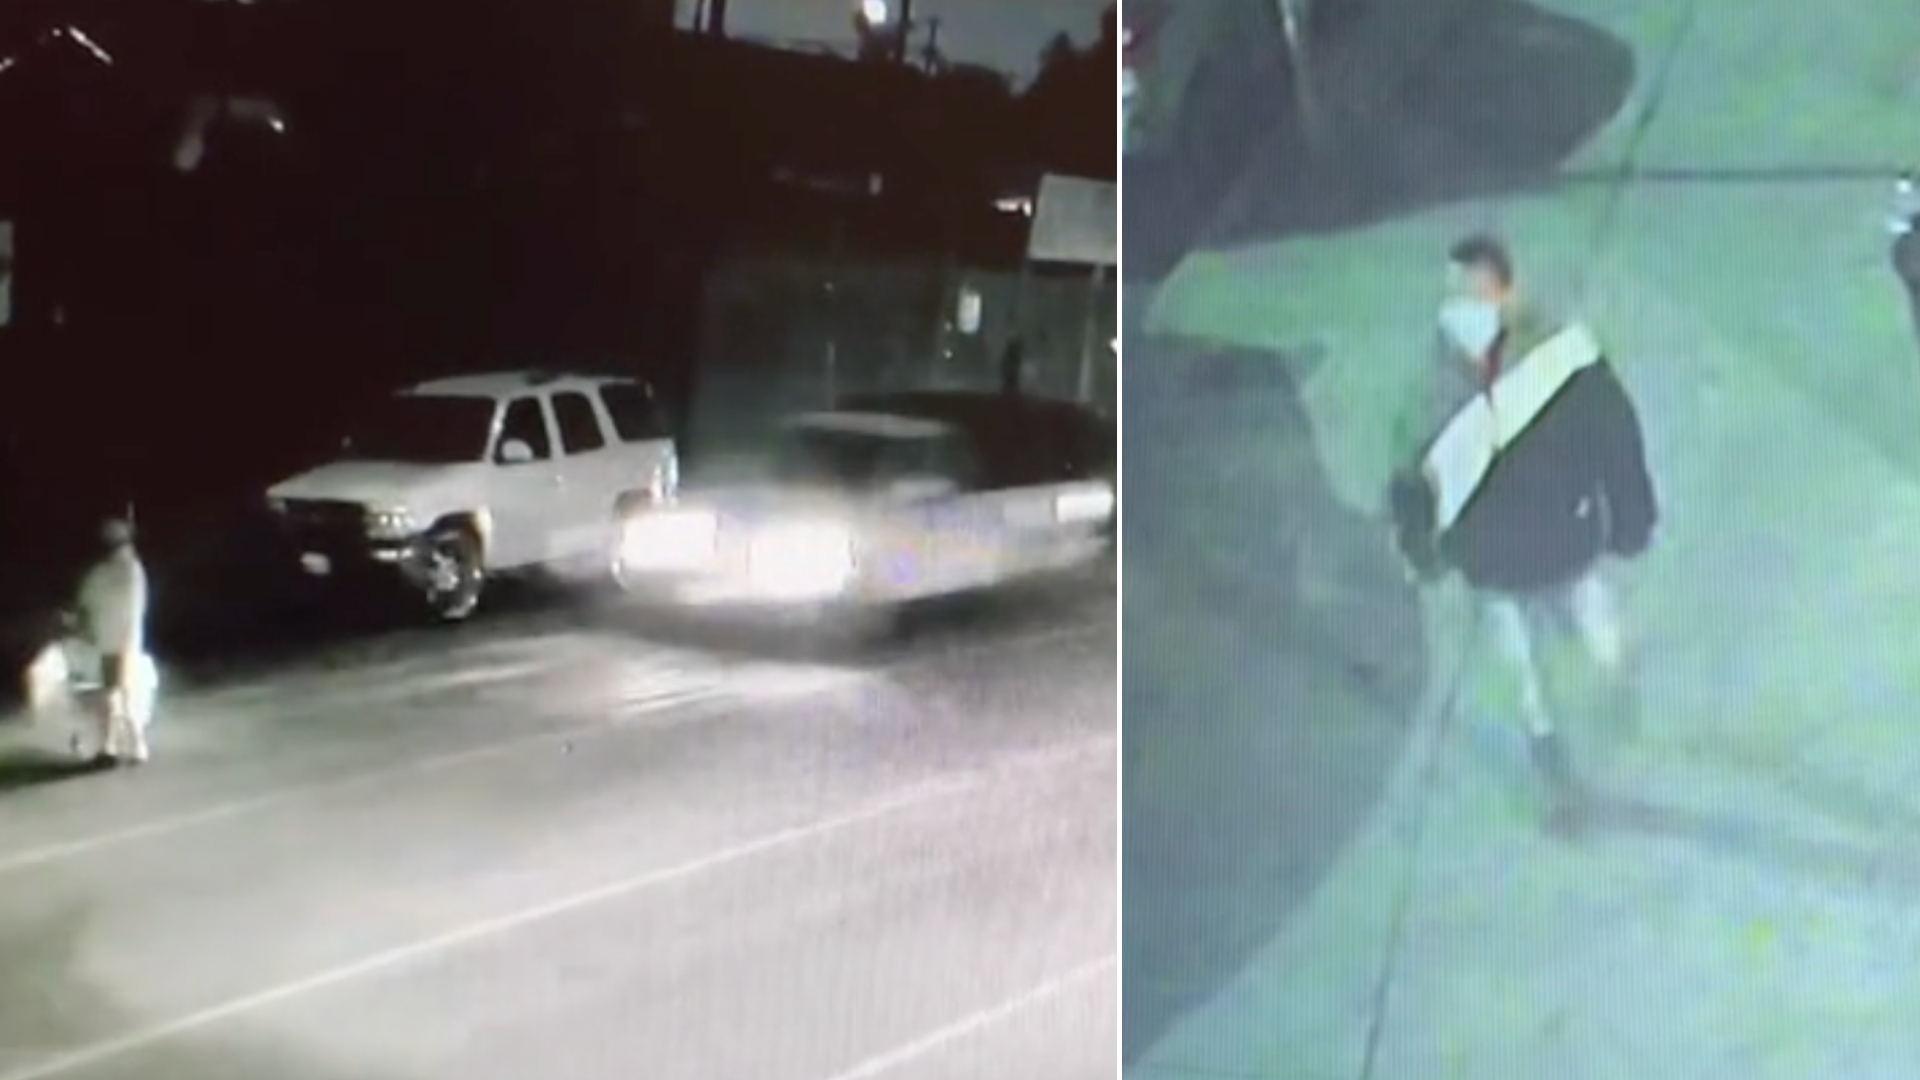 Los Angeles police investigators released these stills from surveillance video showing a woman being struck as she crossed the street and the driver allegedly returning to the scene before fleeing in the Broadway-Manchester neighborhood of South Los Angeles on Feb. 2, 2021.